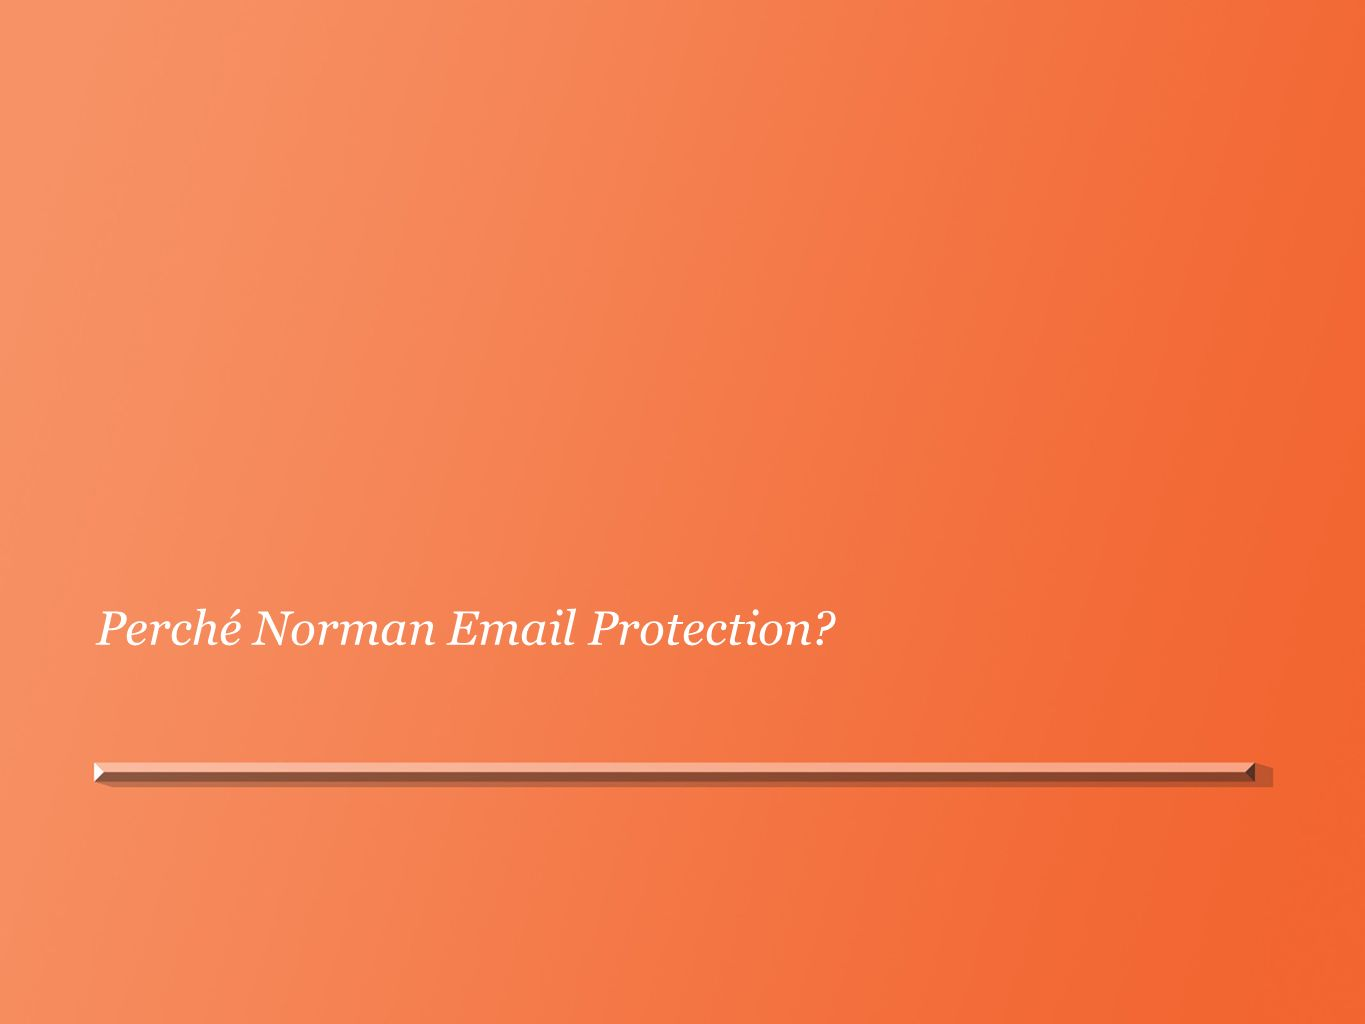 Perché Norman Email Protection